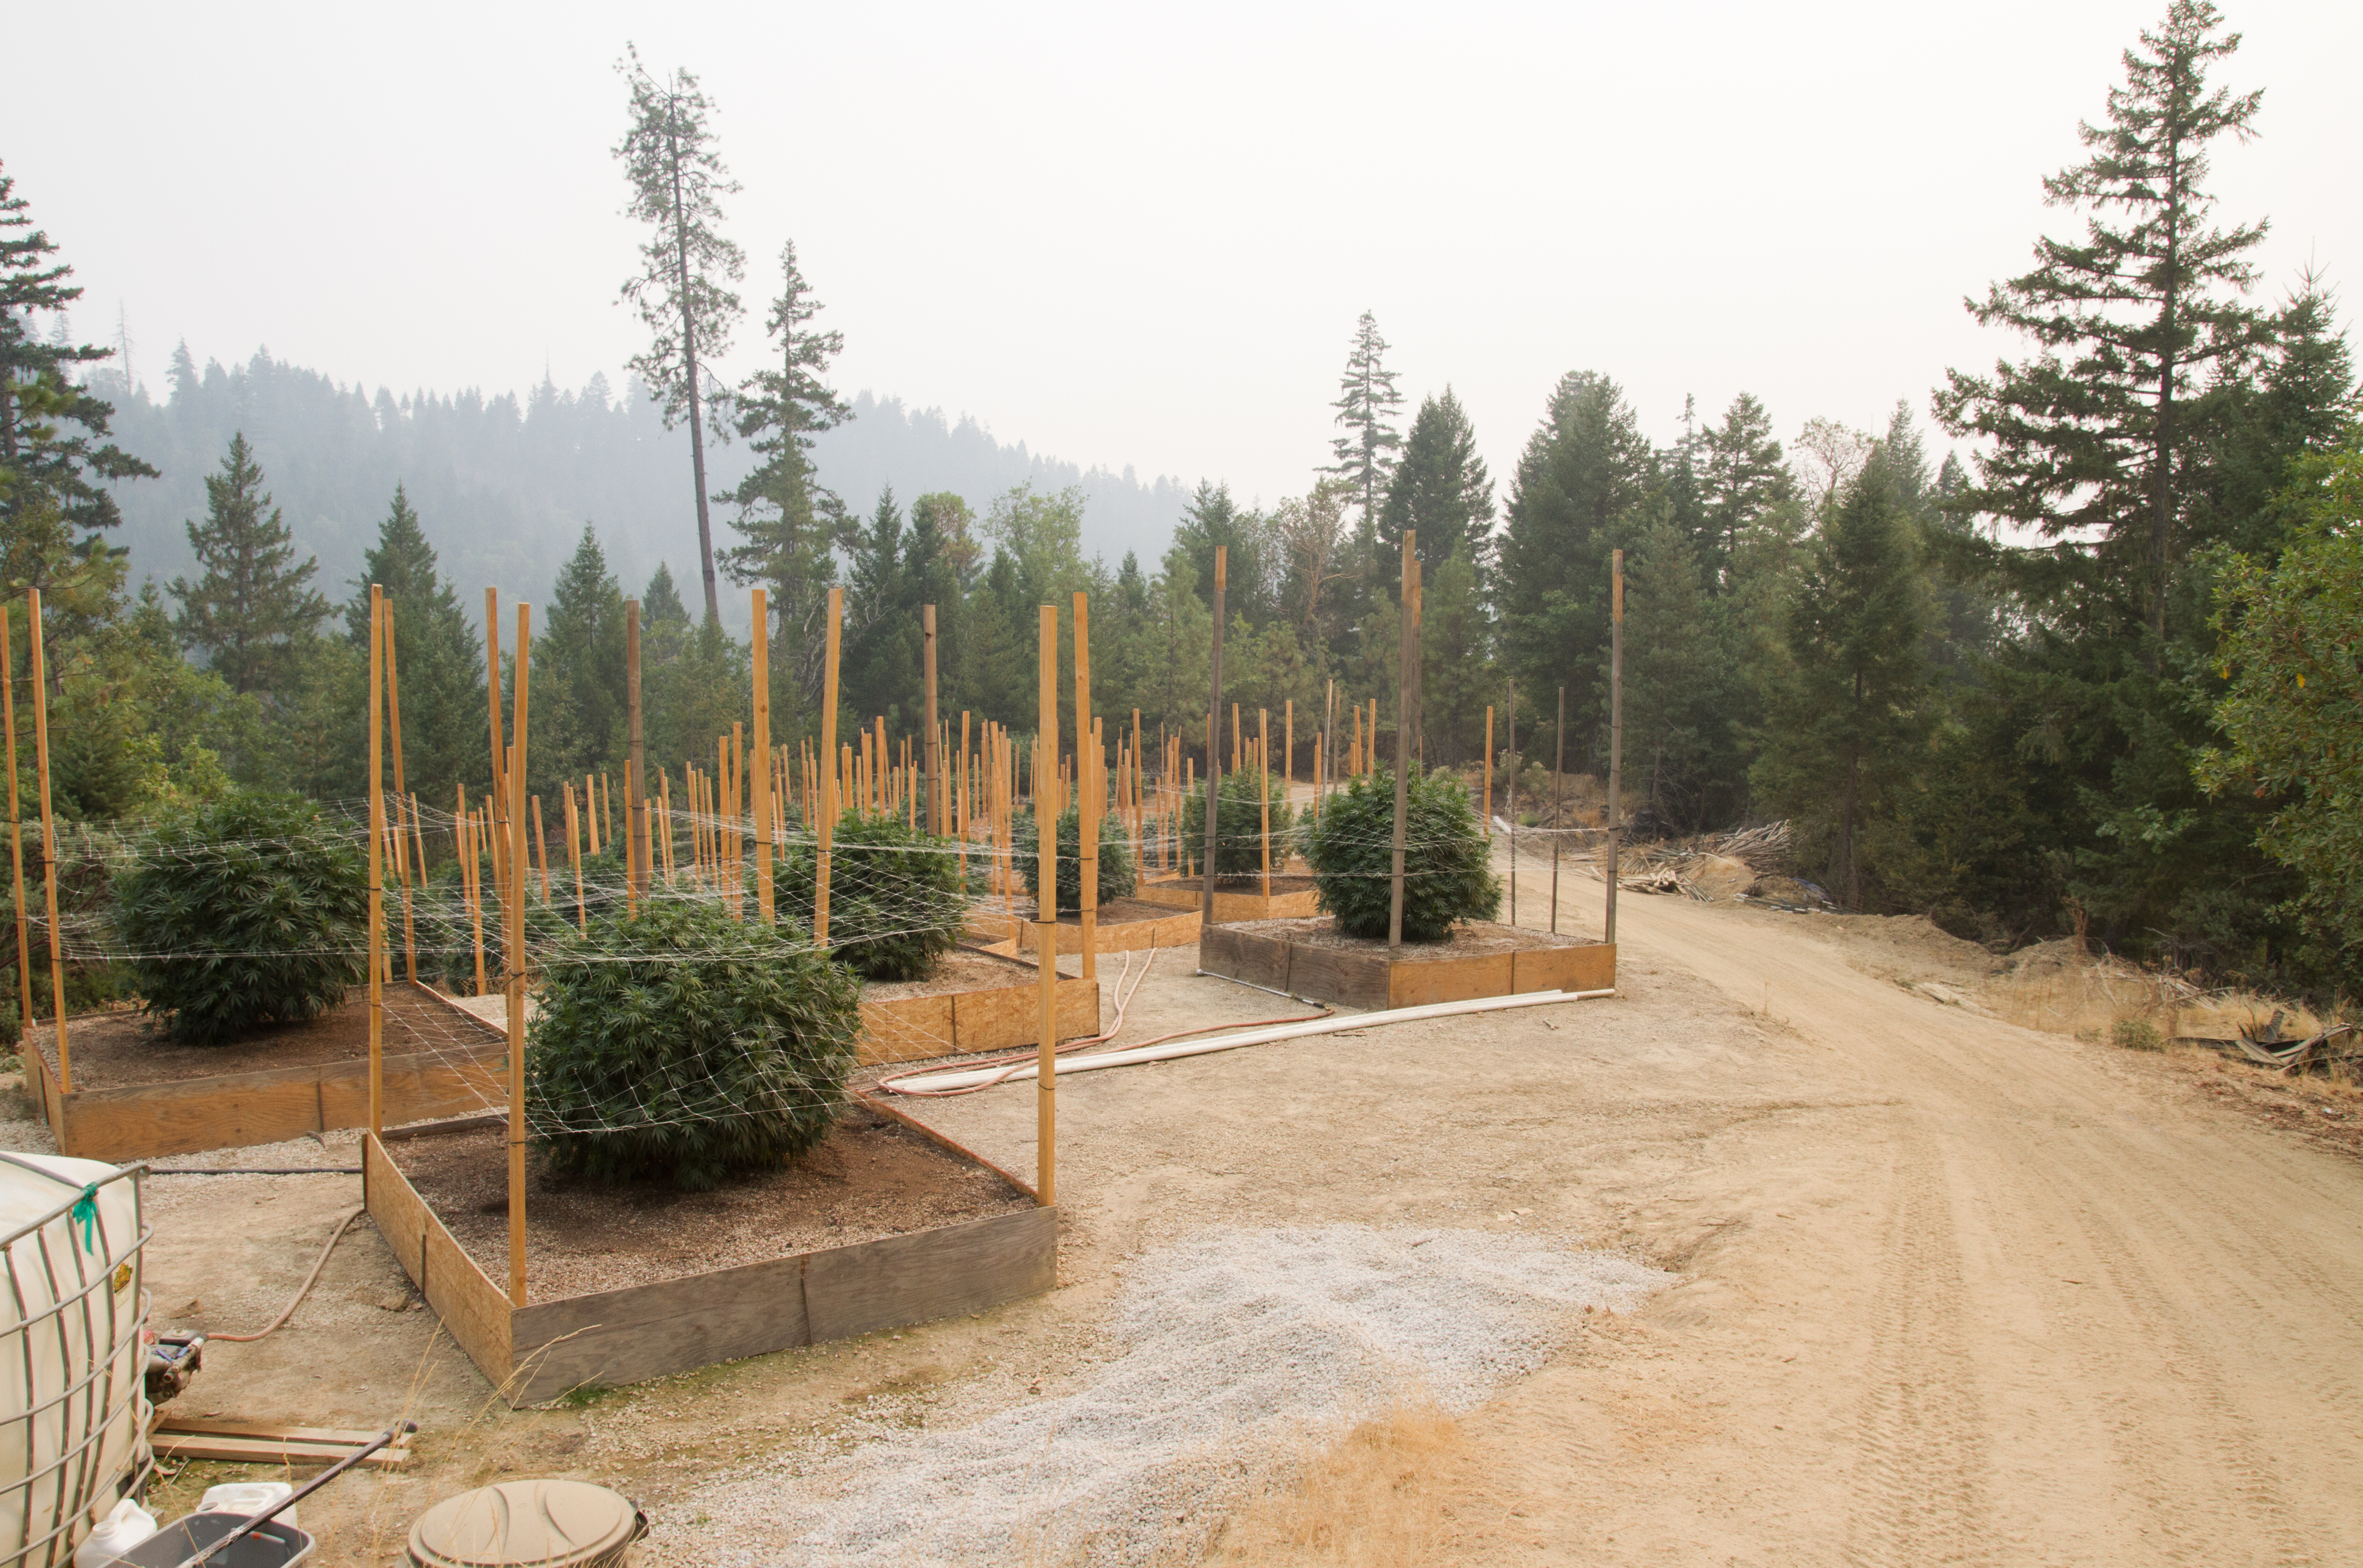 Cannabis farm, with plants in separated beds.